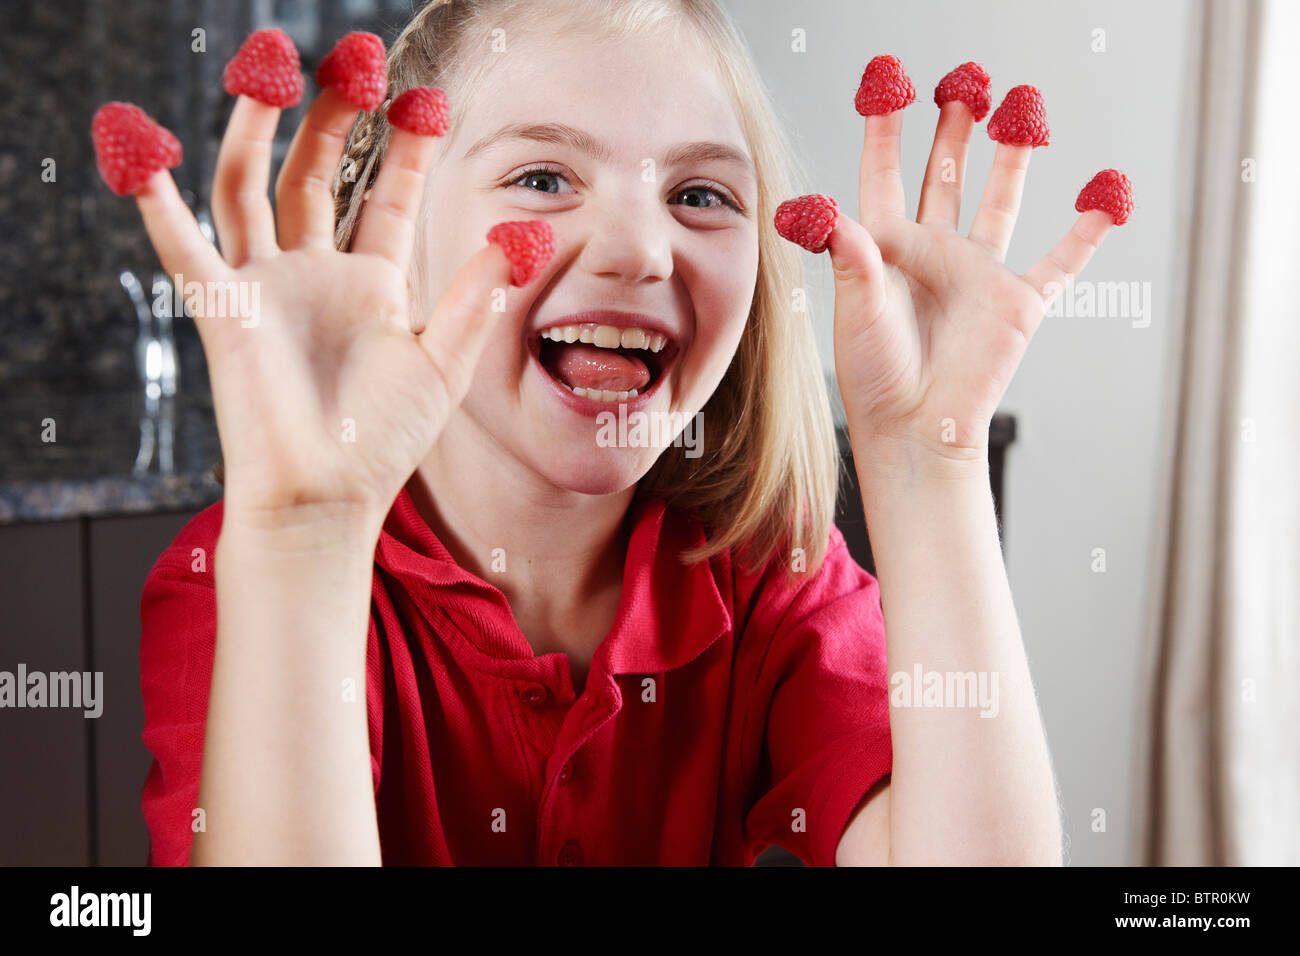 Girl with raspberries on fingers Stock Photo